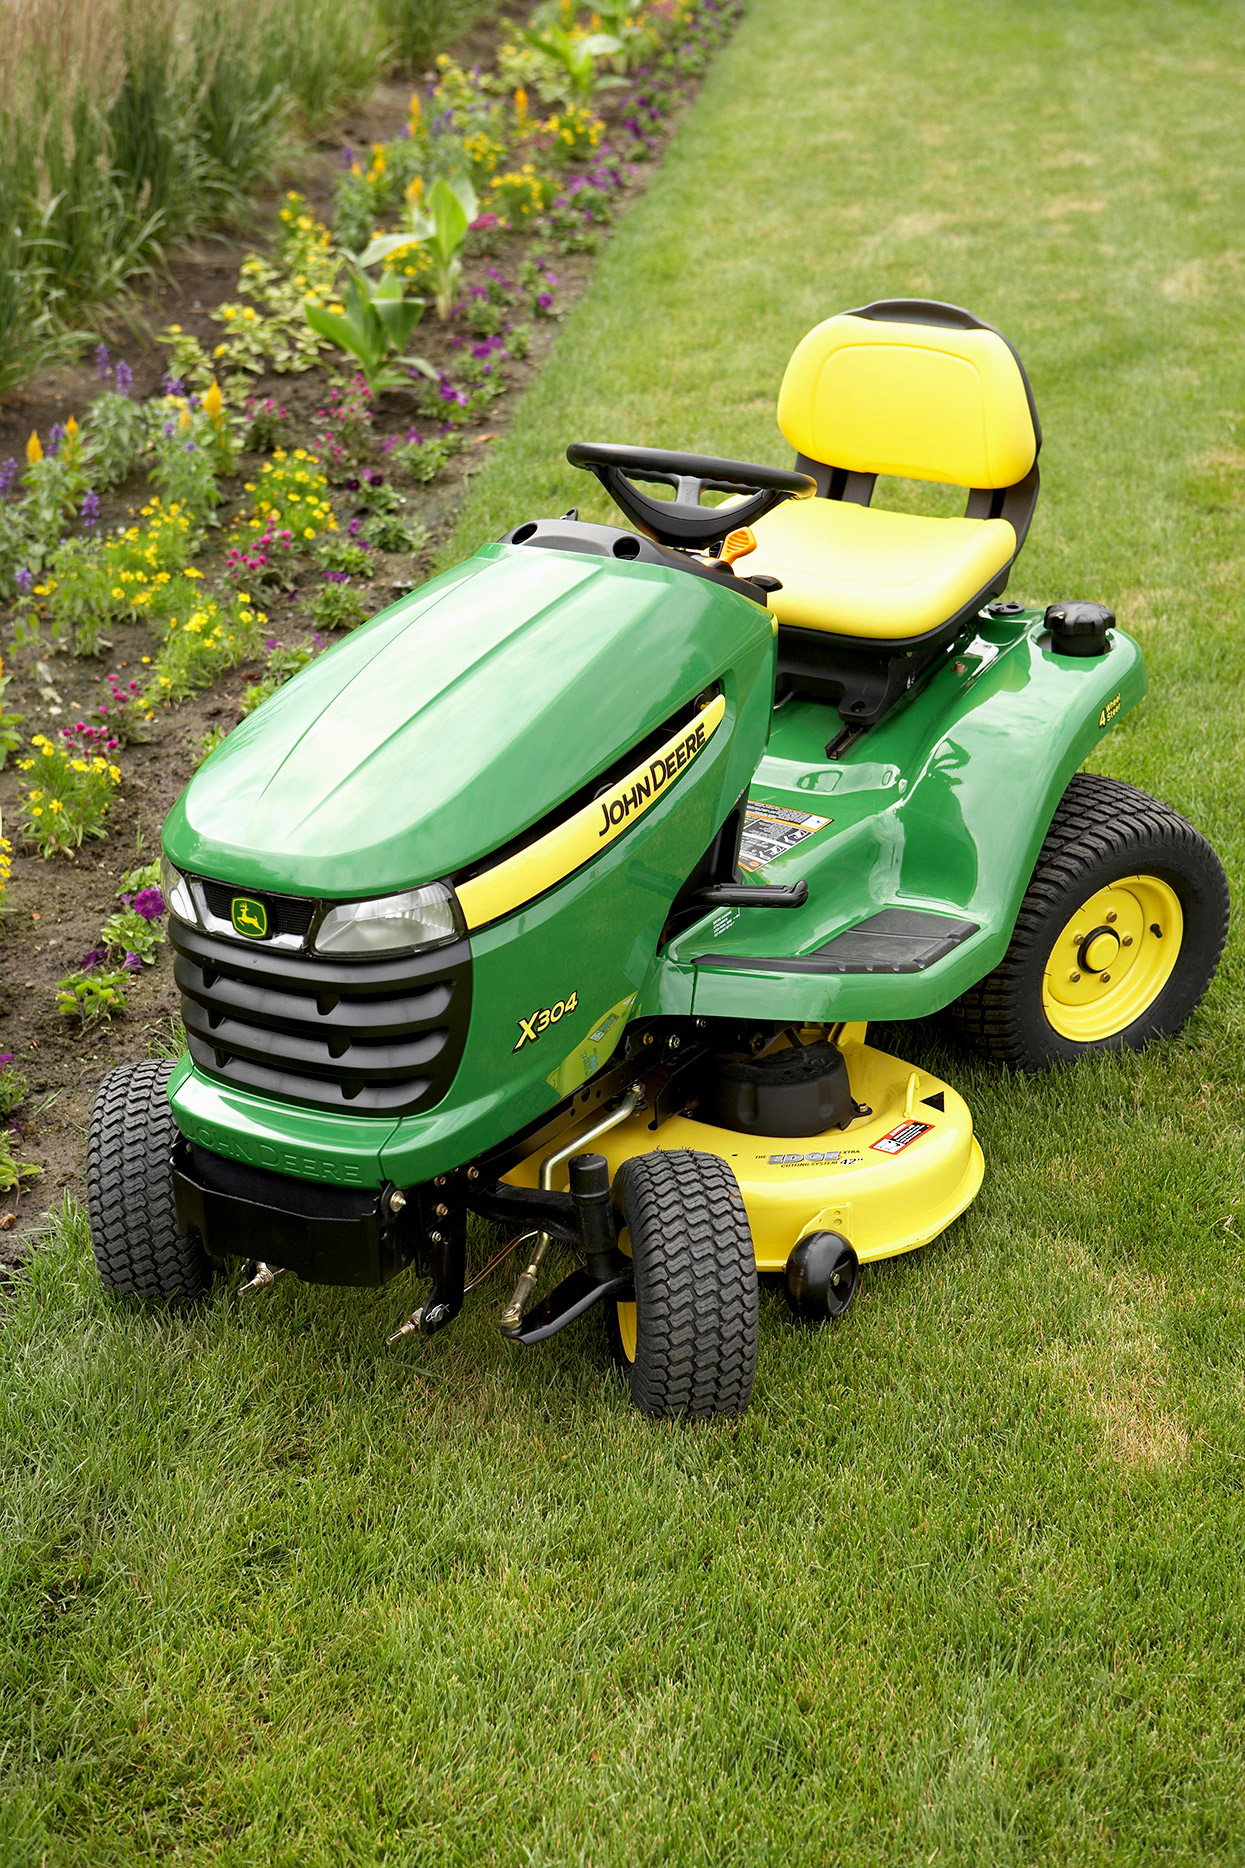 john deere riding power mower